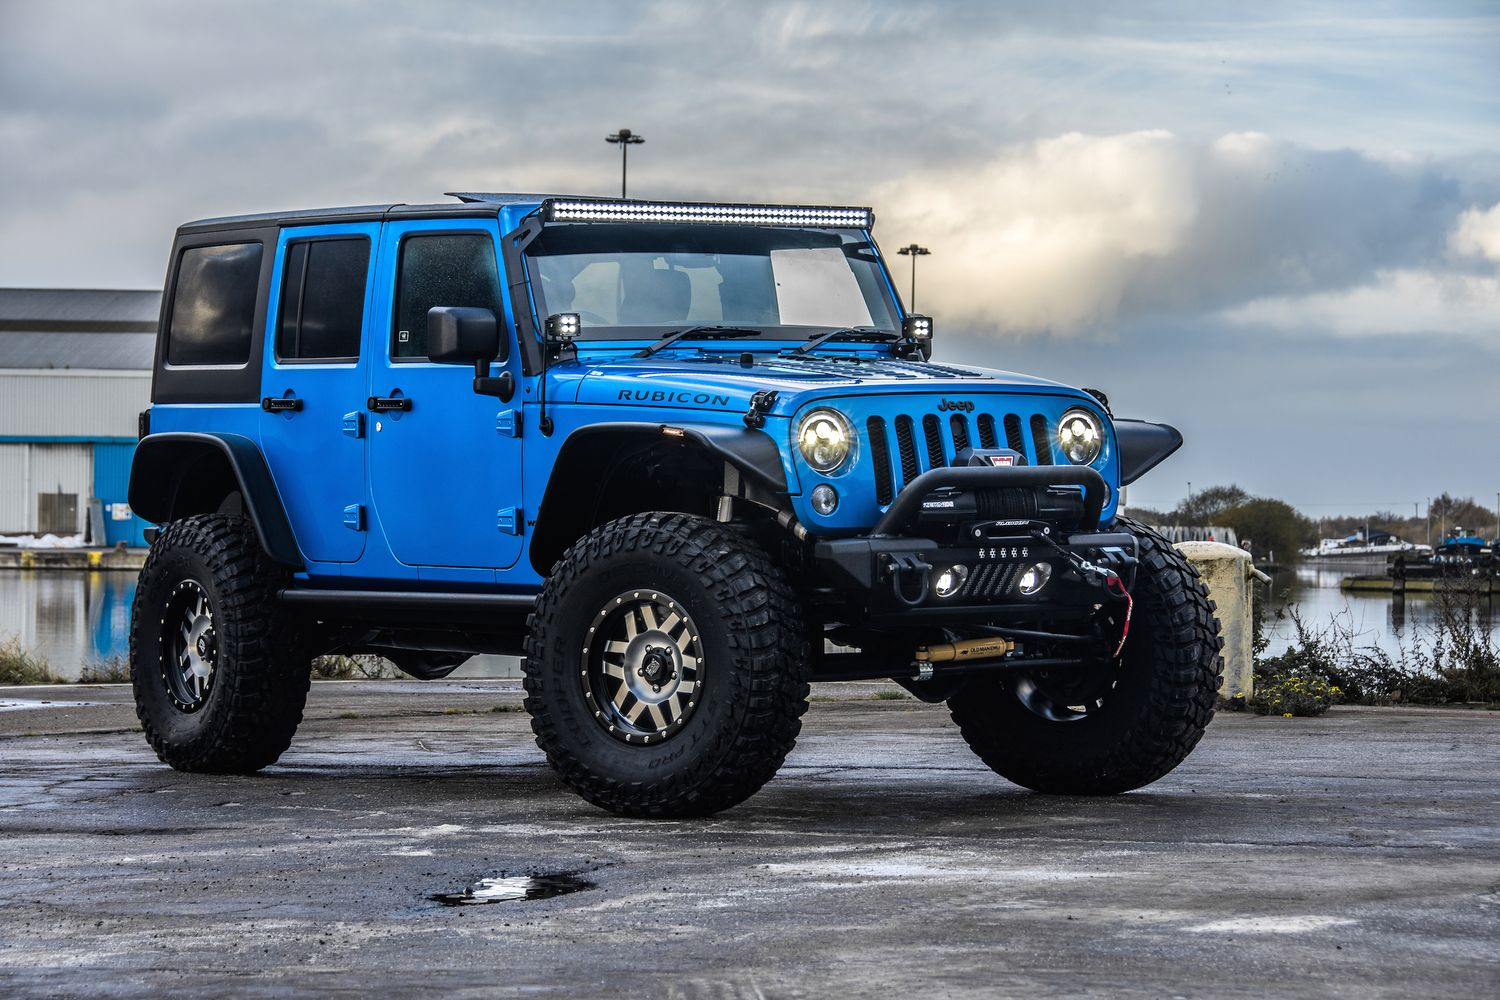 storm 15 2016 jeep wrangler rubicon 4 door 3 6l v6 showcase storm jeeps. Black Bedroom Furniture Sets. Home Design Ideas